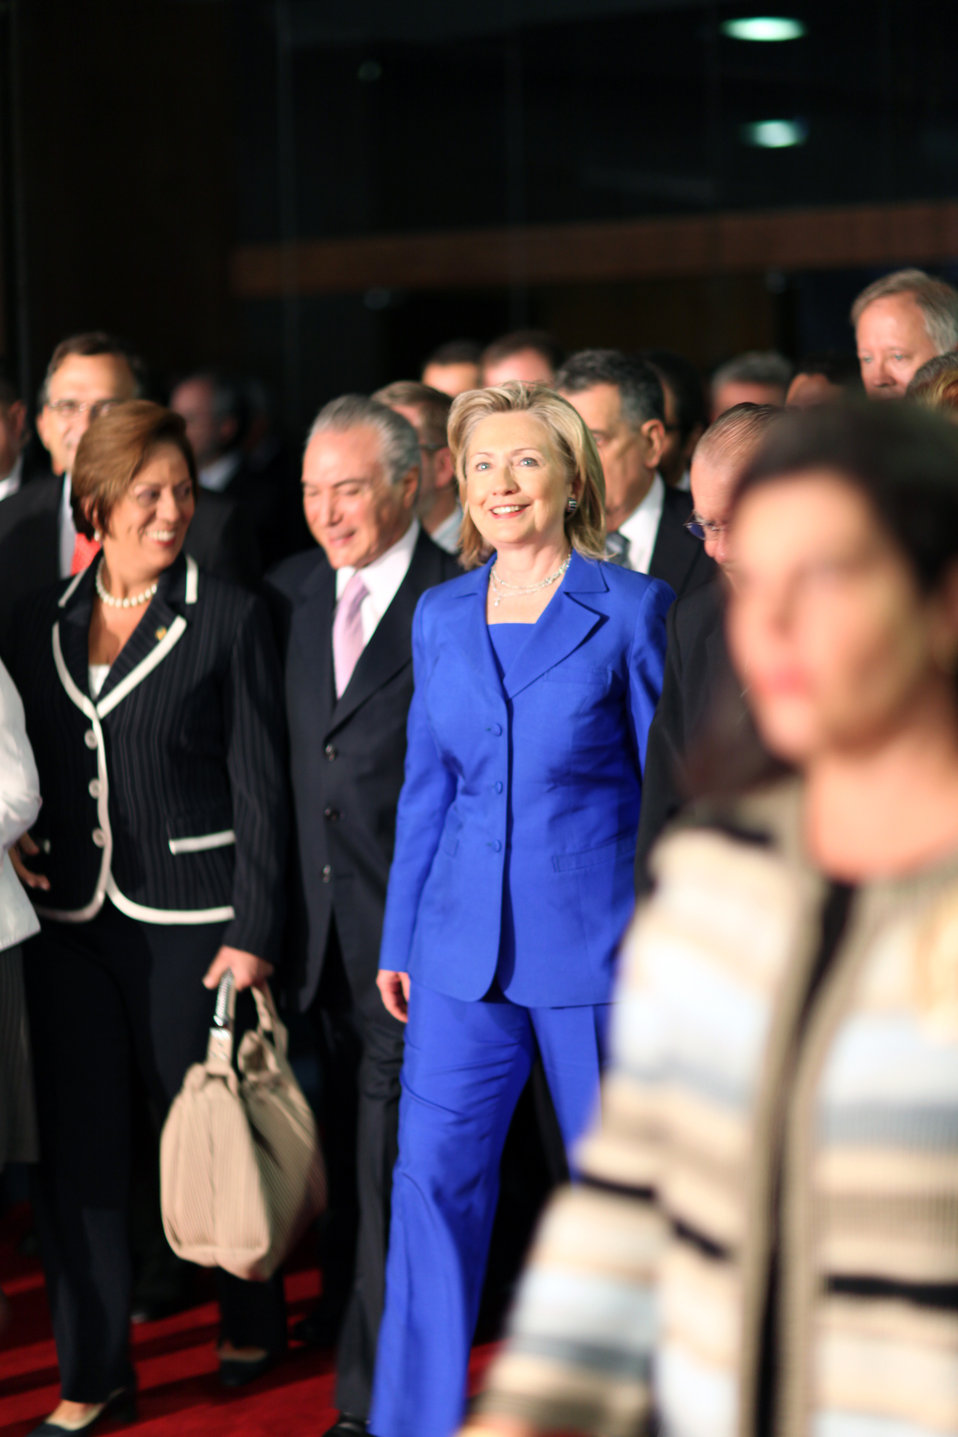 Secretary Clinton Departs a Meeting